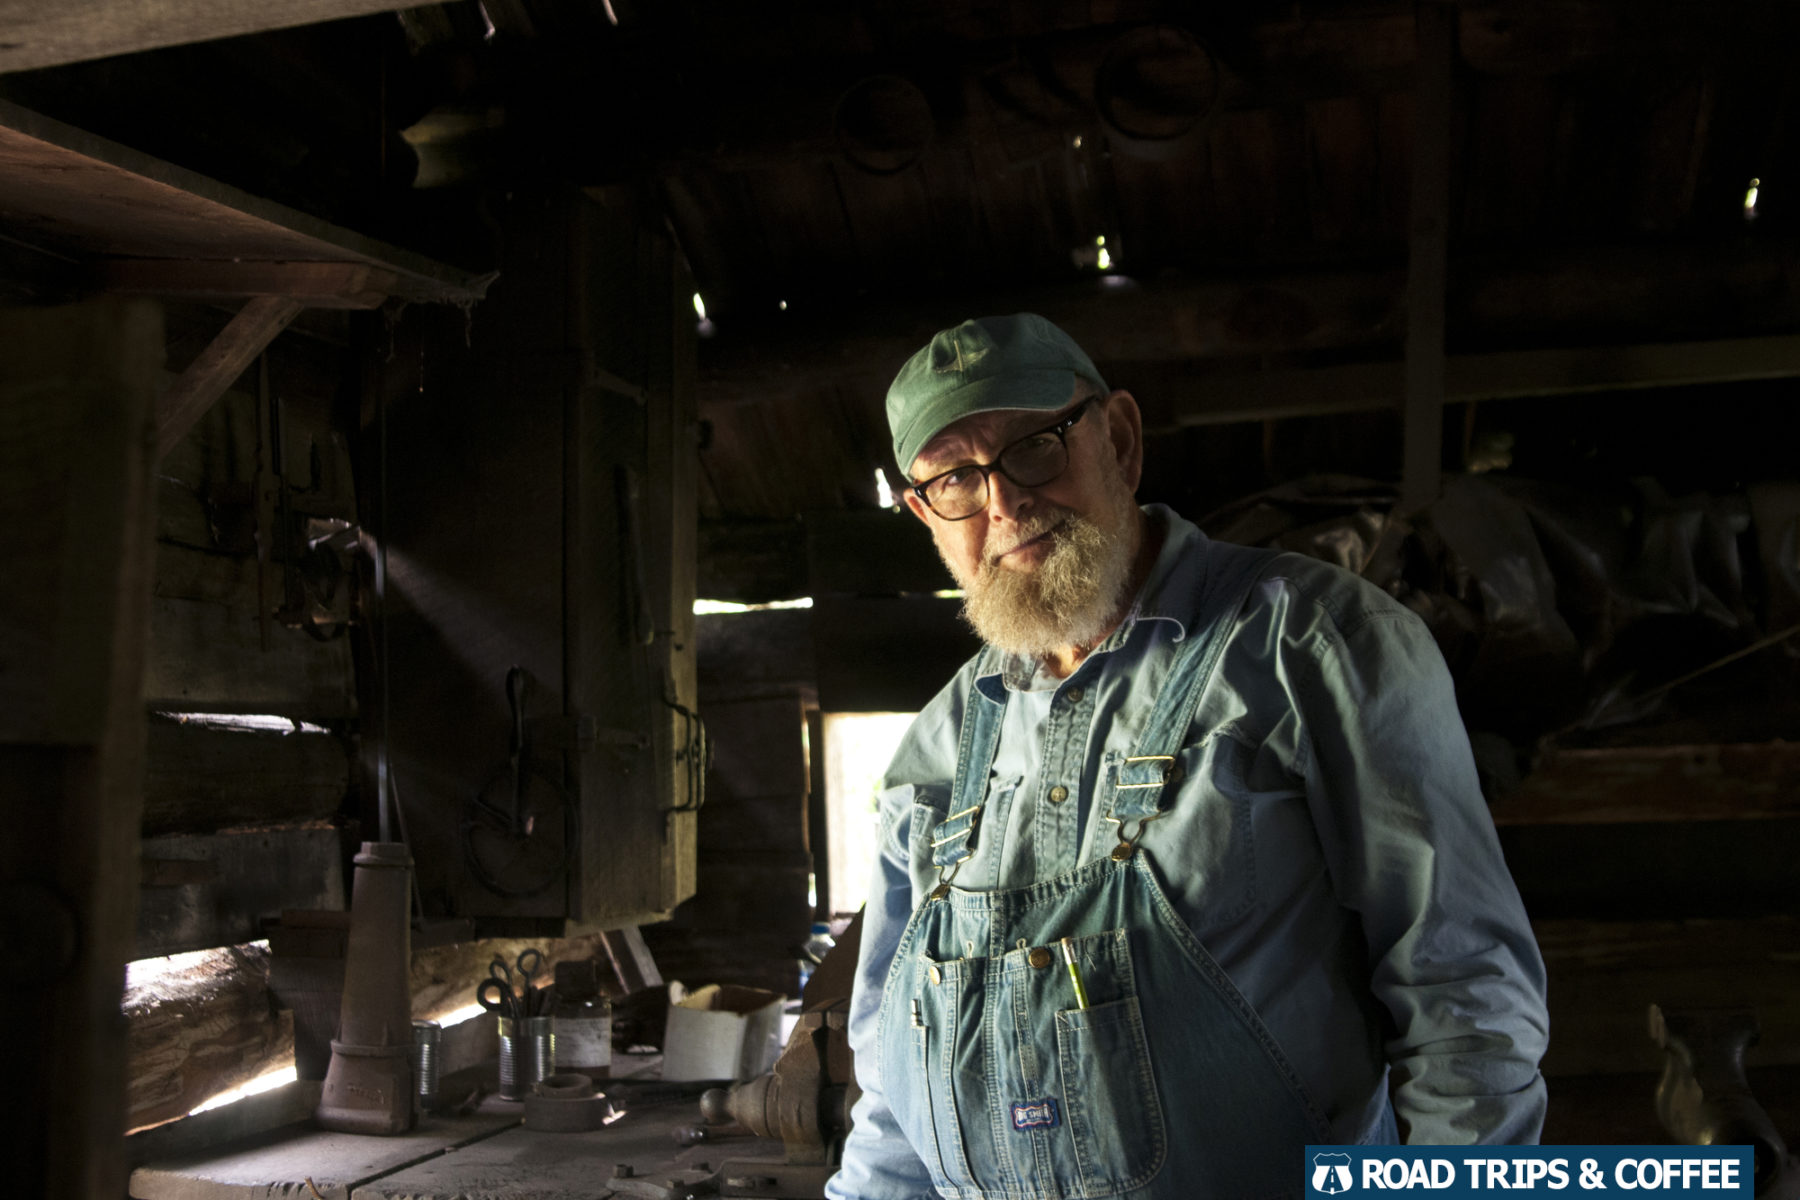 A reenactor in the blacksmith shop at Mabry Mill on the Blue Ridge Parkway in Virginia